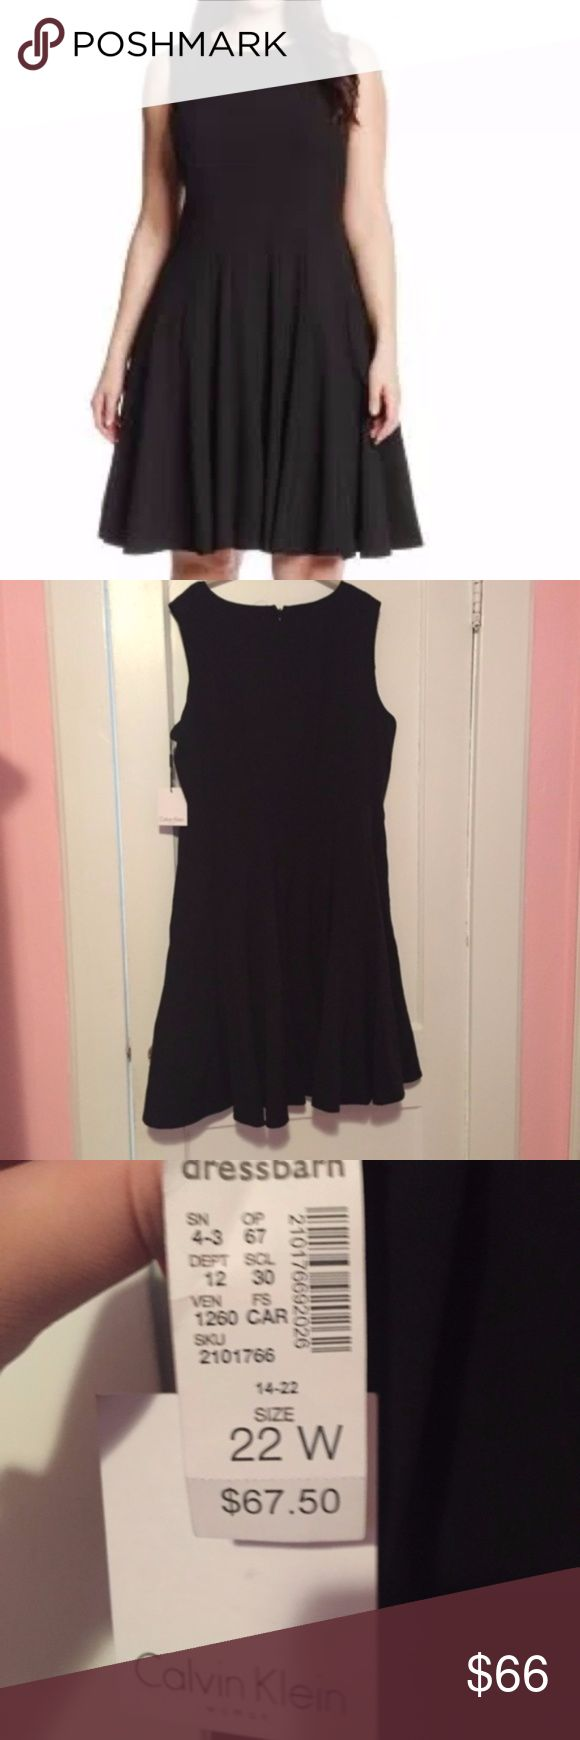 NWT Calvin Klein Black Pleated A Line Dress NWT Calvin Klein Black Sleeveless Pleated A-Line Dress. PLEASE BE AWARE: It has the sensor on the inside of the dress but it's not noticeable at all! Calvin Klein Dresses Asymmetrical